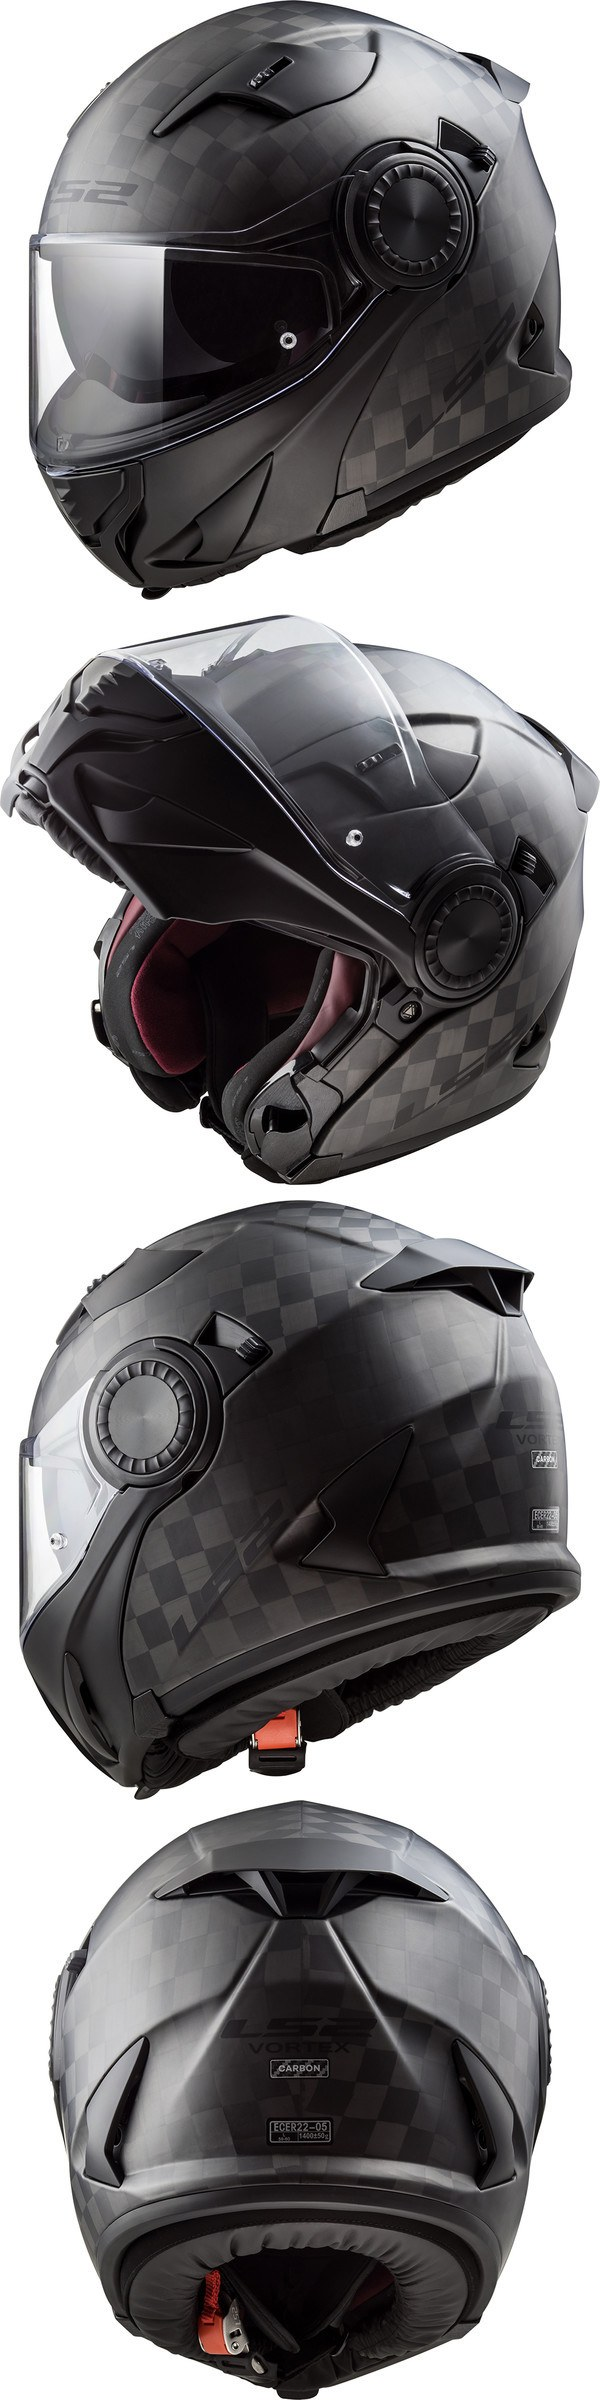 Casque FF313 Vortex Solid Carbon LS2 Noir